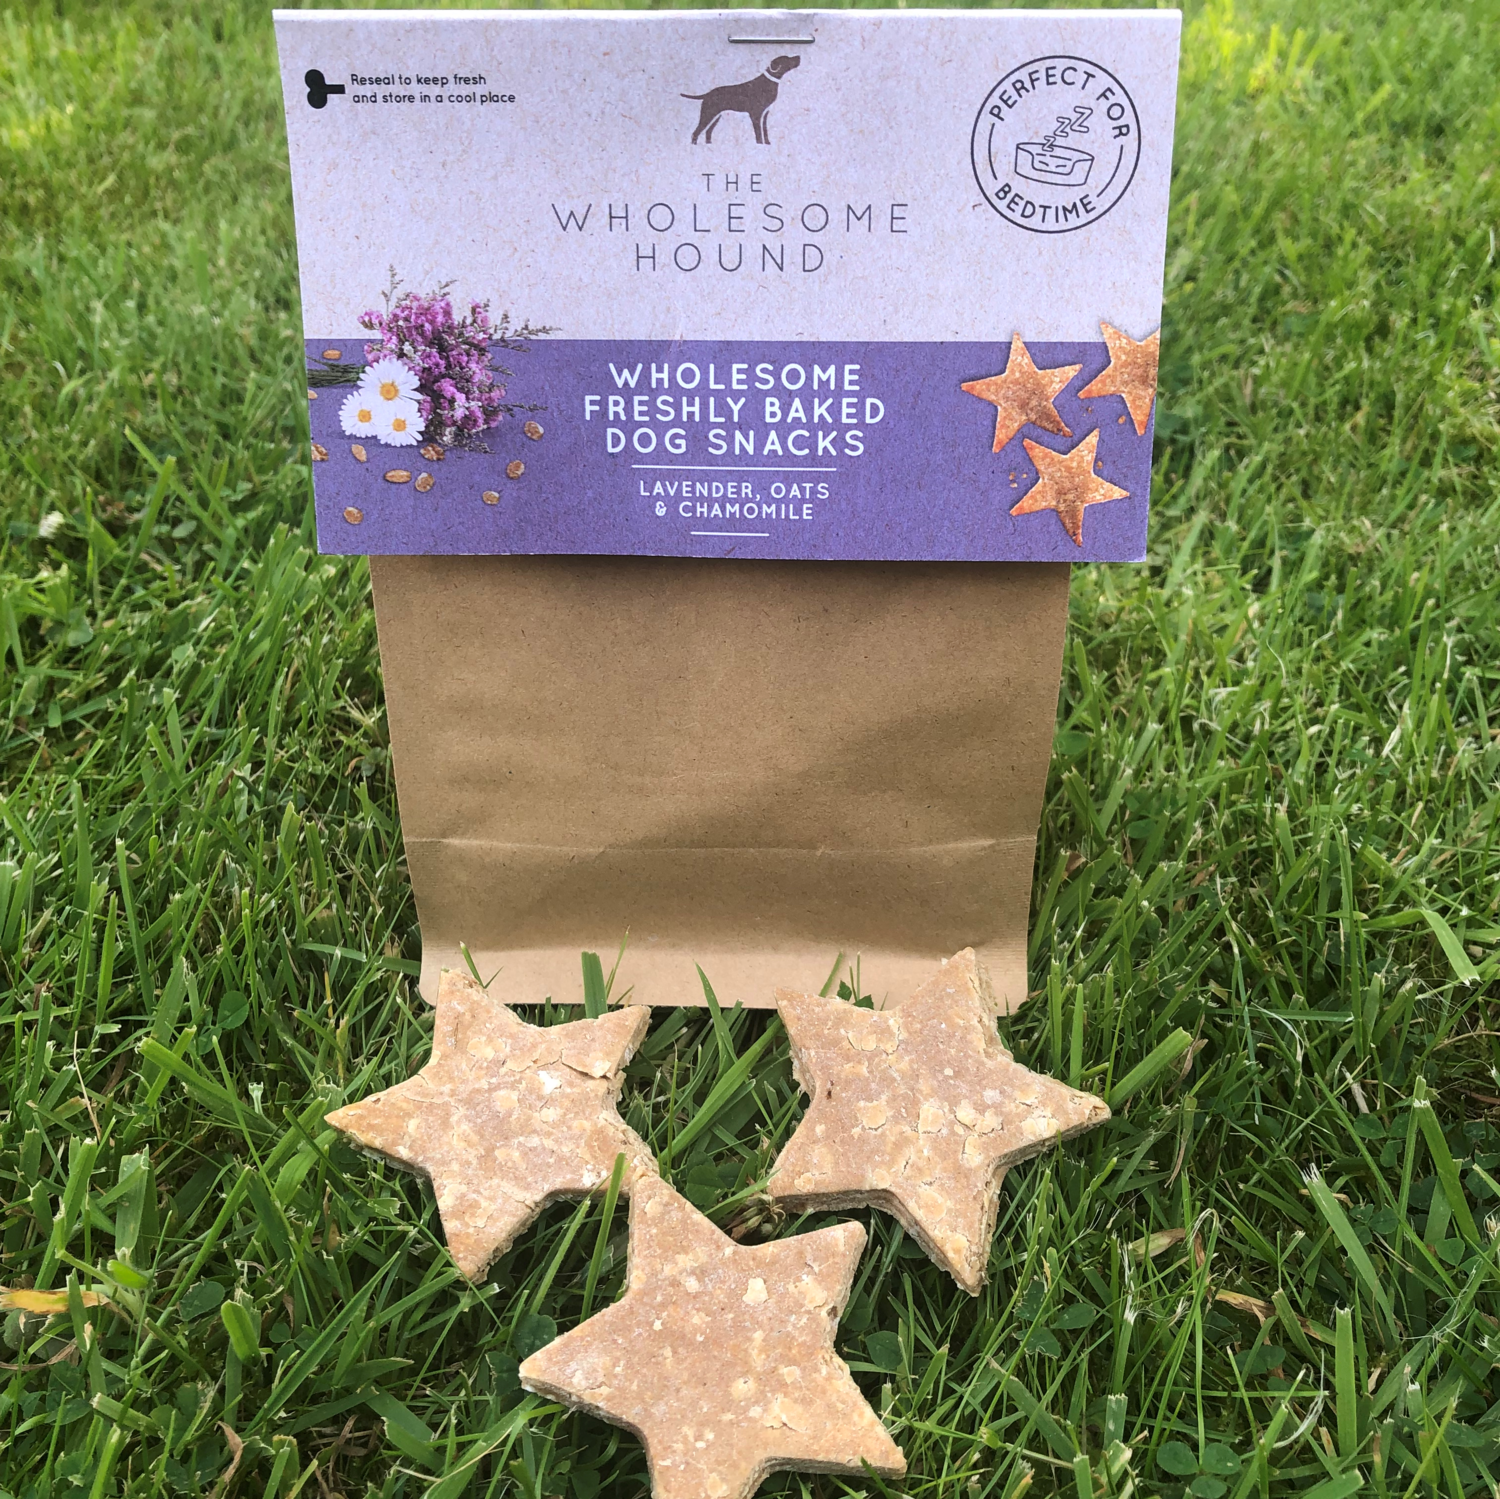 Lavender and Chamomile Wholesome Dog Snacks